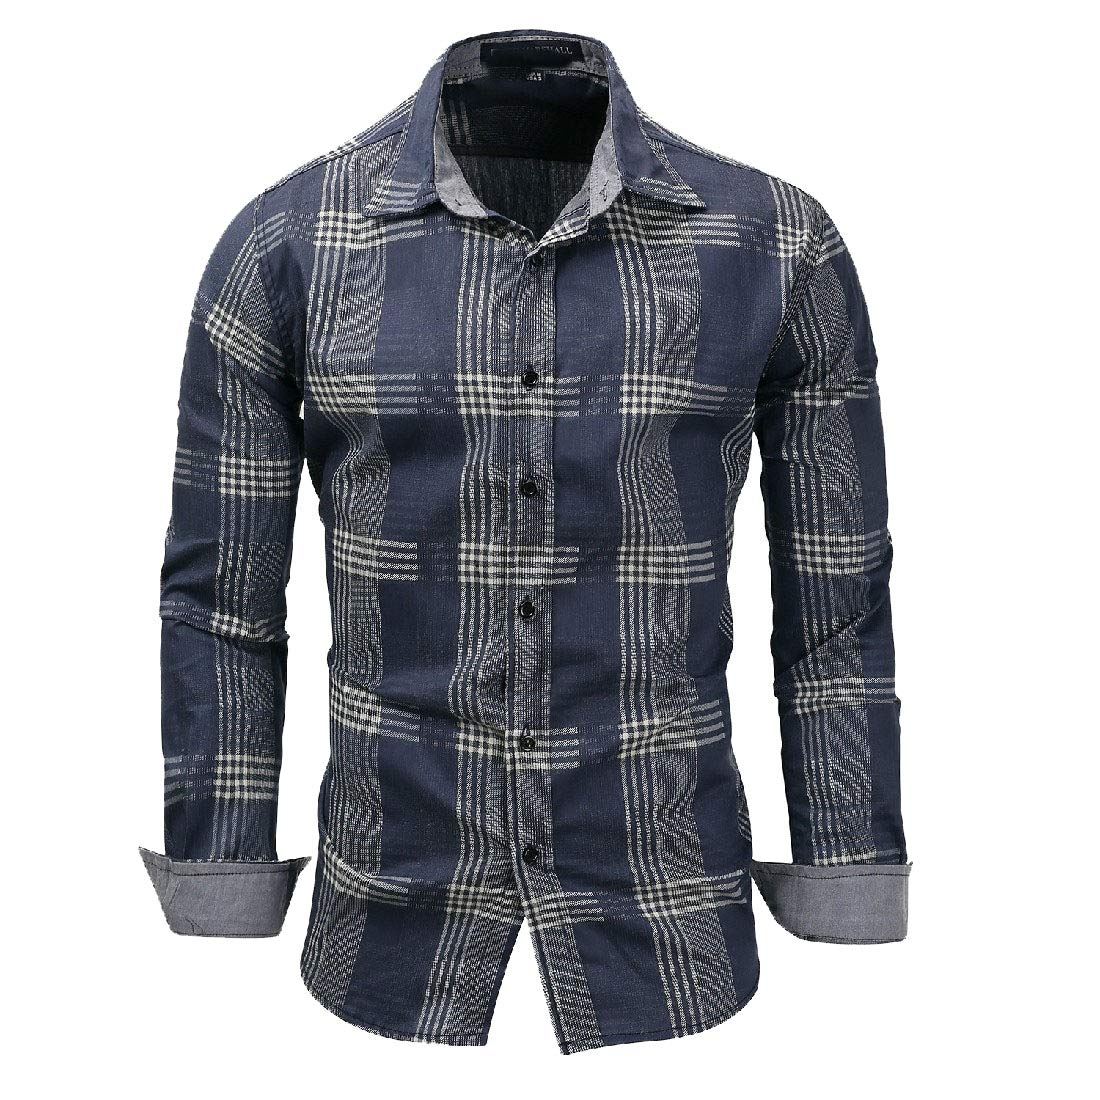 Freely Mens Buttoned Small Plaid Turn-Down Collar Long Sleeve Work Shirt